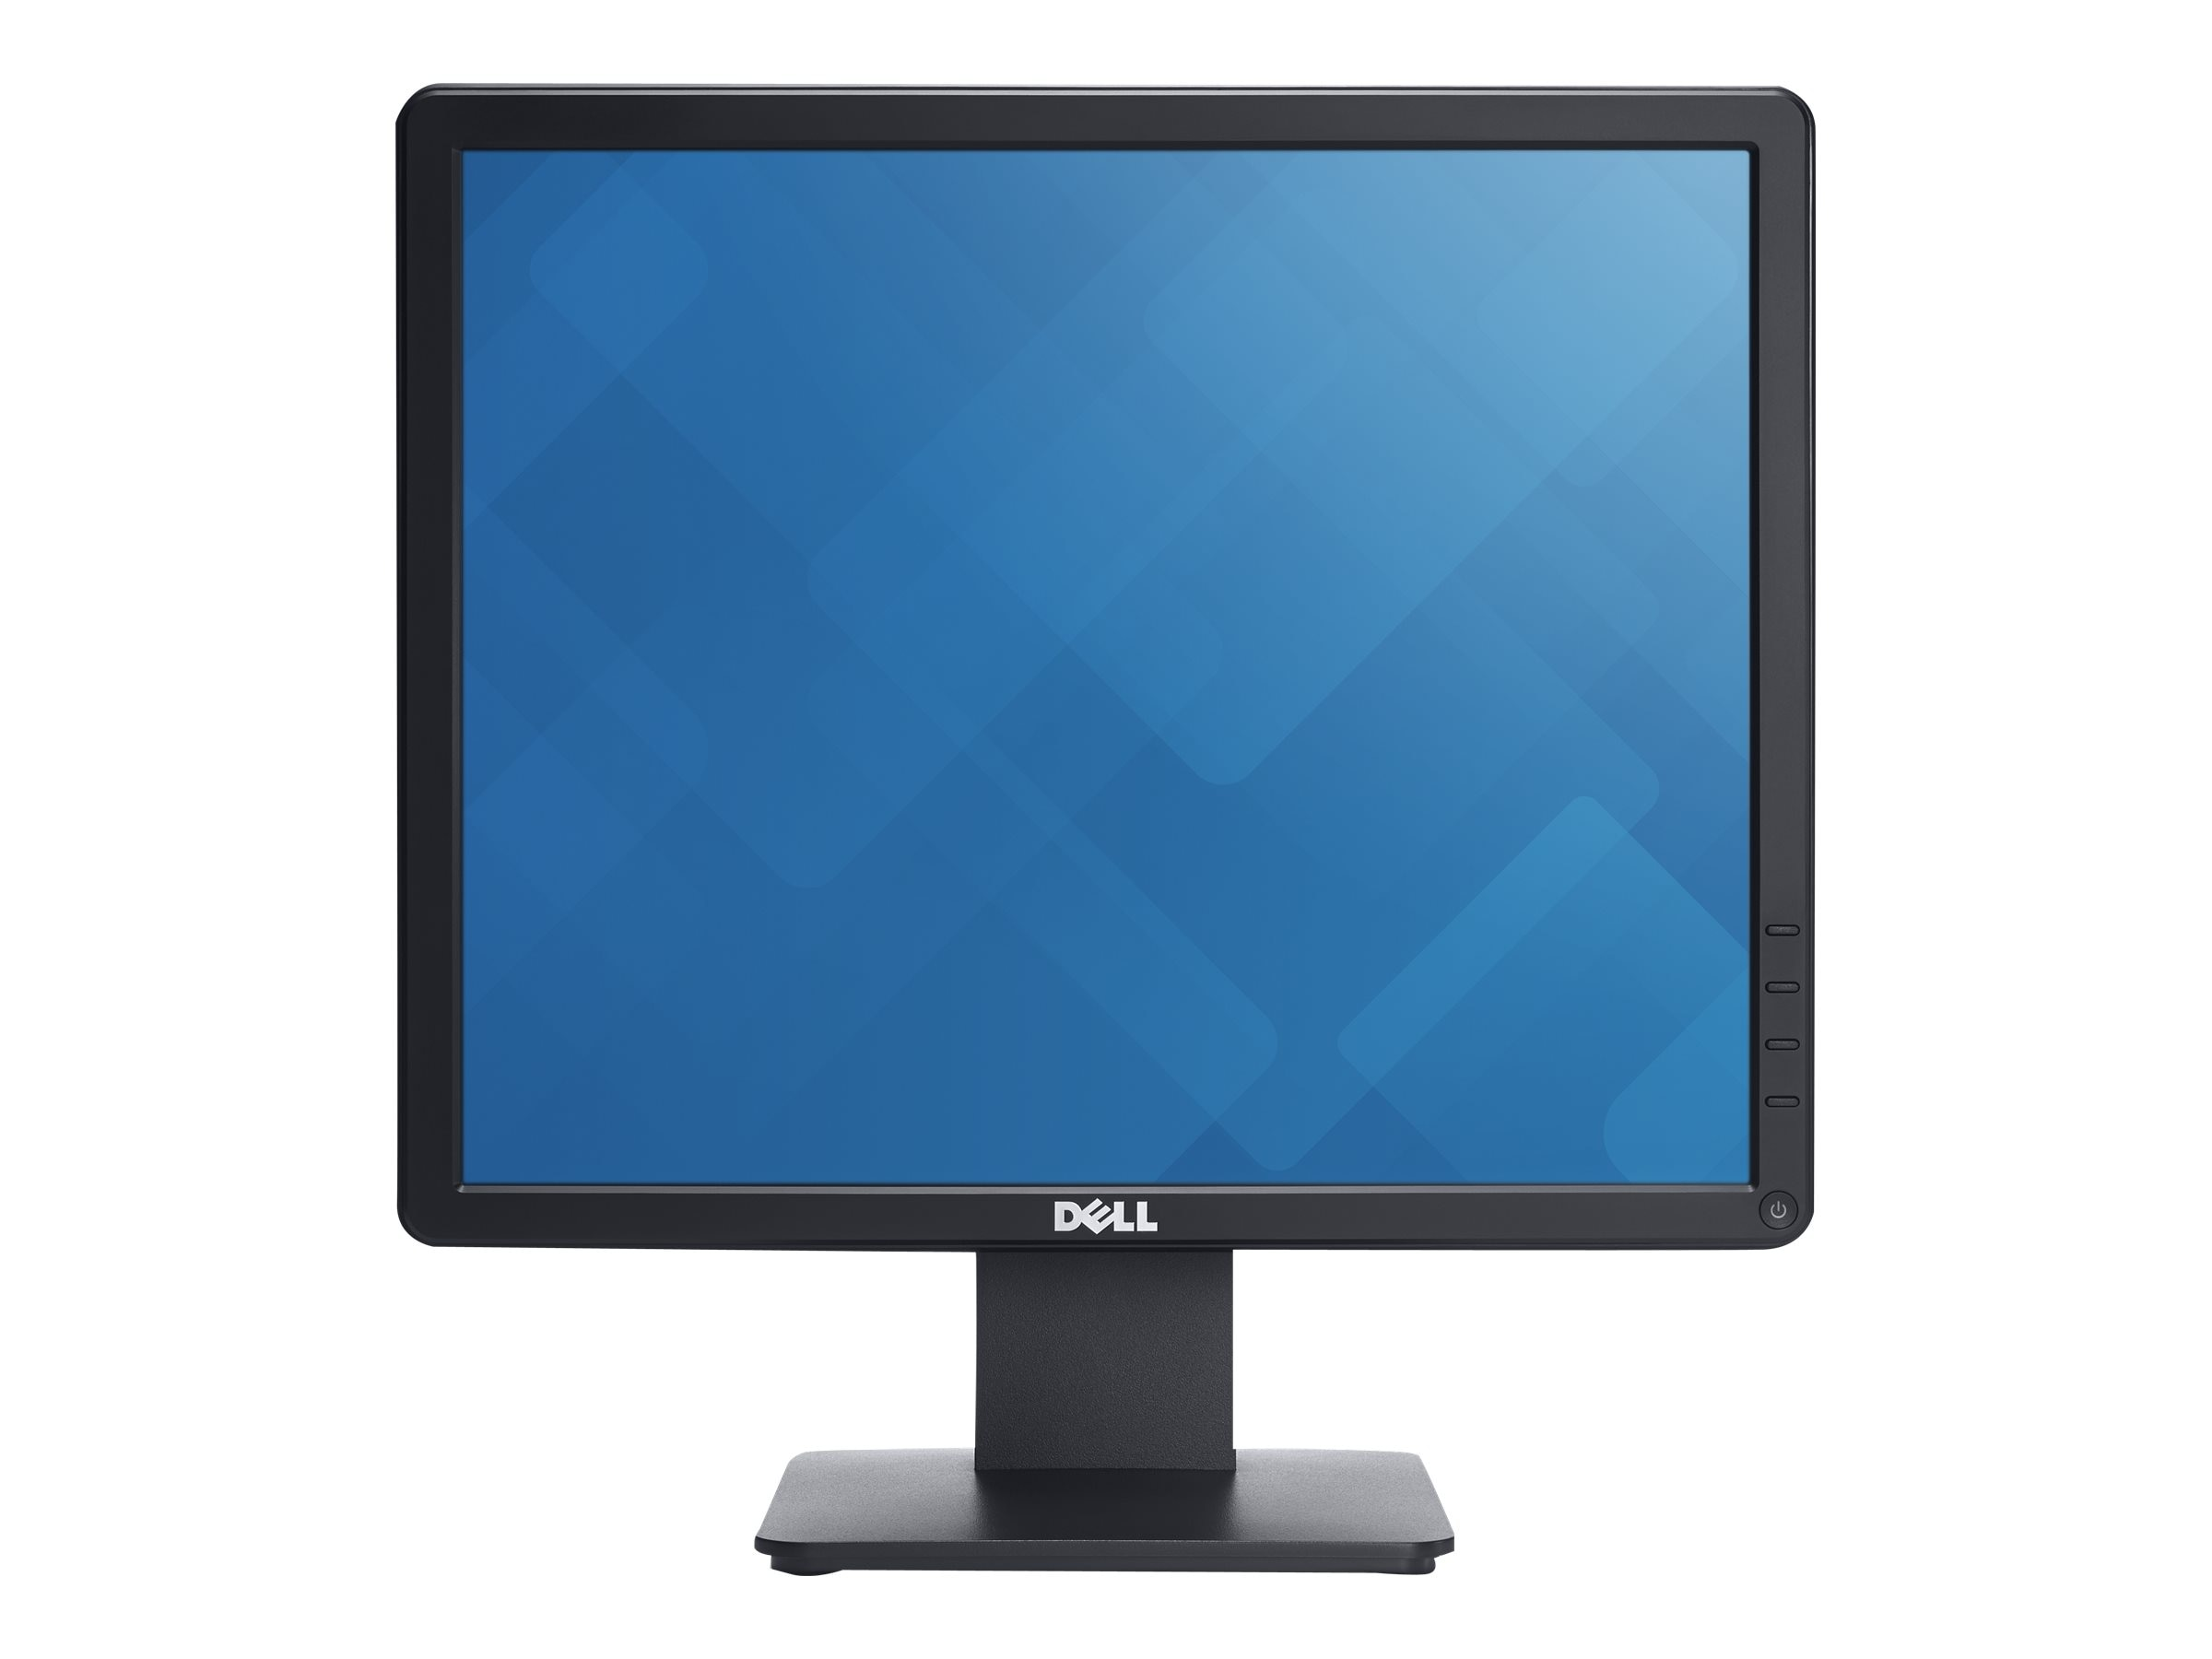 Dell 17 E1715S LED-LCD Monitor, Black, E1715S, 17069549, Monitors - LED-LCD